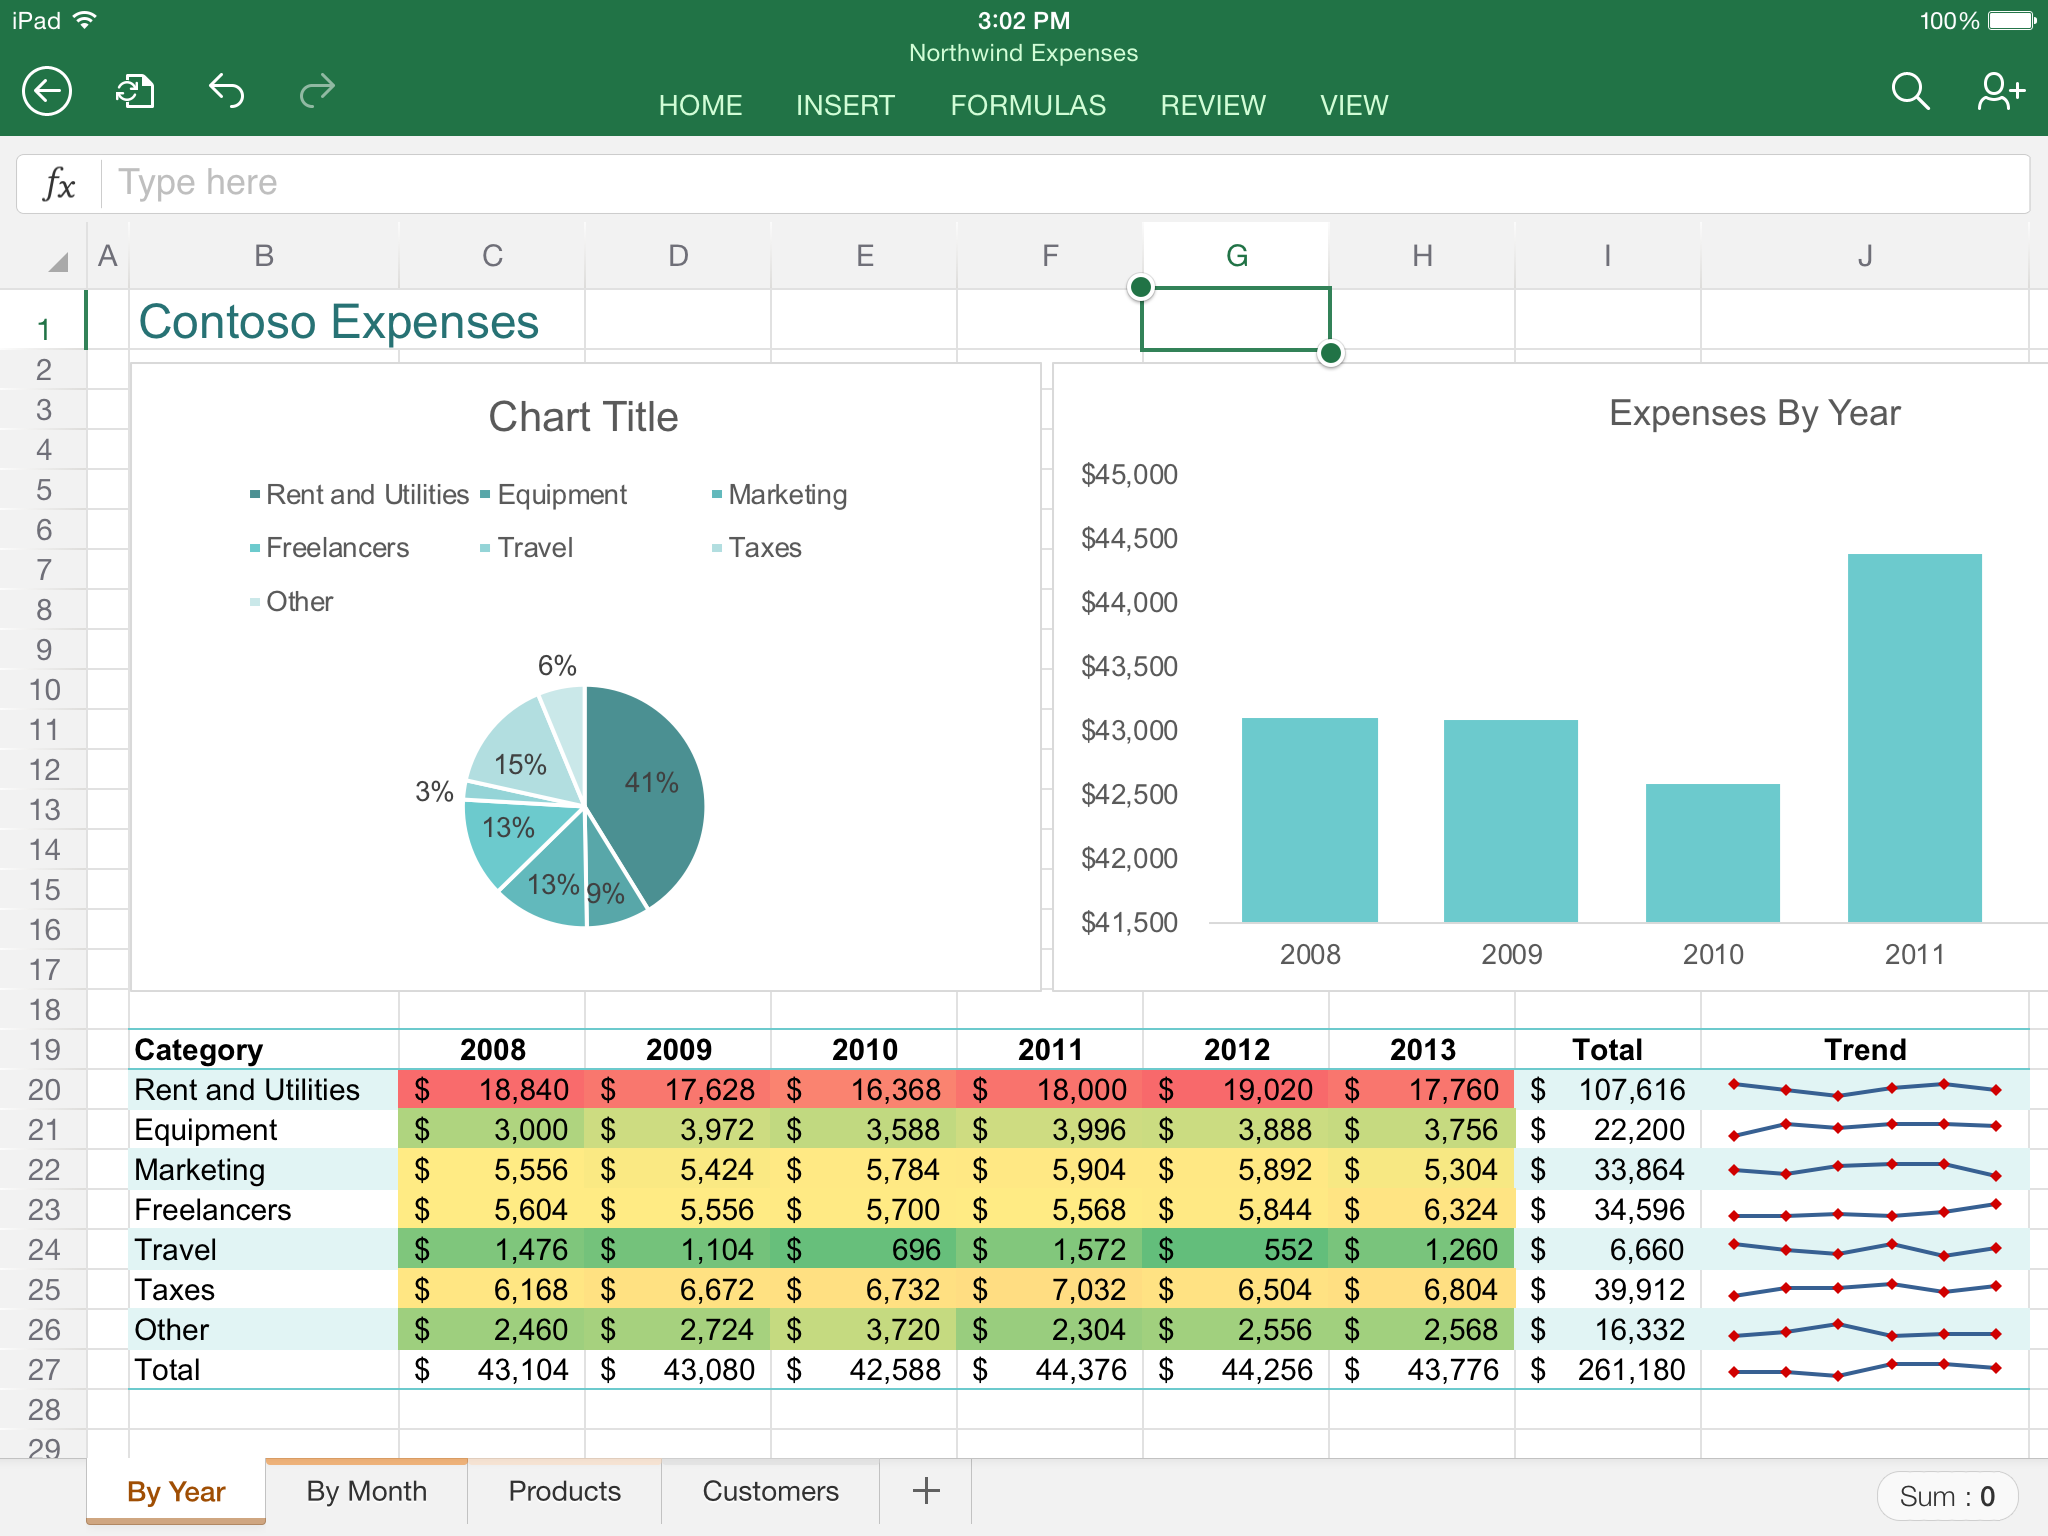 Ediblewildsus  Pretty App Highlight Excel  Mobile Digital Now With Fetching Excel In Action With Captivating Excel How To Sort By Column Also If Or Statement Excel In Addition Cagr Formula Excel And Regression Excel As Well As How To Mail Merge From Excel To Word  Additionally Excel Scatter Plot From Youstonybrookedu With Ediblewildsus  Fetching App Highlight Excel  Mobile Digital Now With Captivating Excel In Action And Pretty Excel How To Sort By Column Also If Or Statement Excel In Addition Cagr Formula Excel From Youstonybrookedu